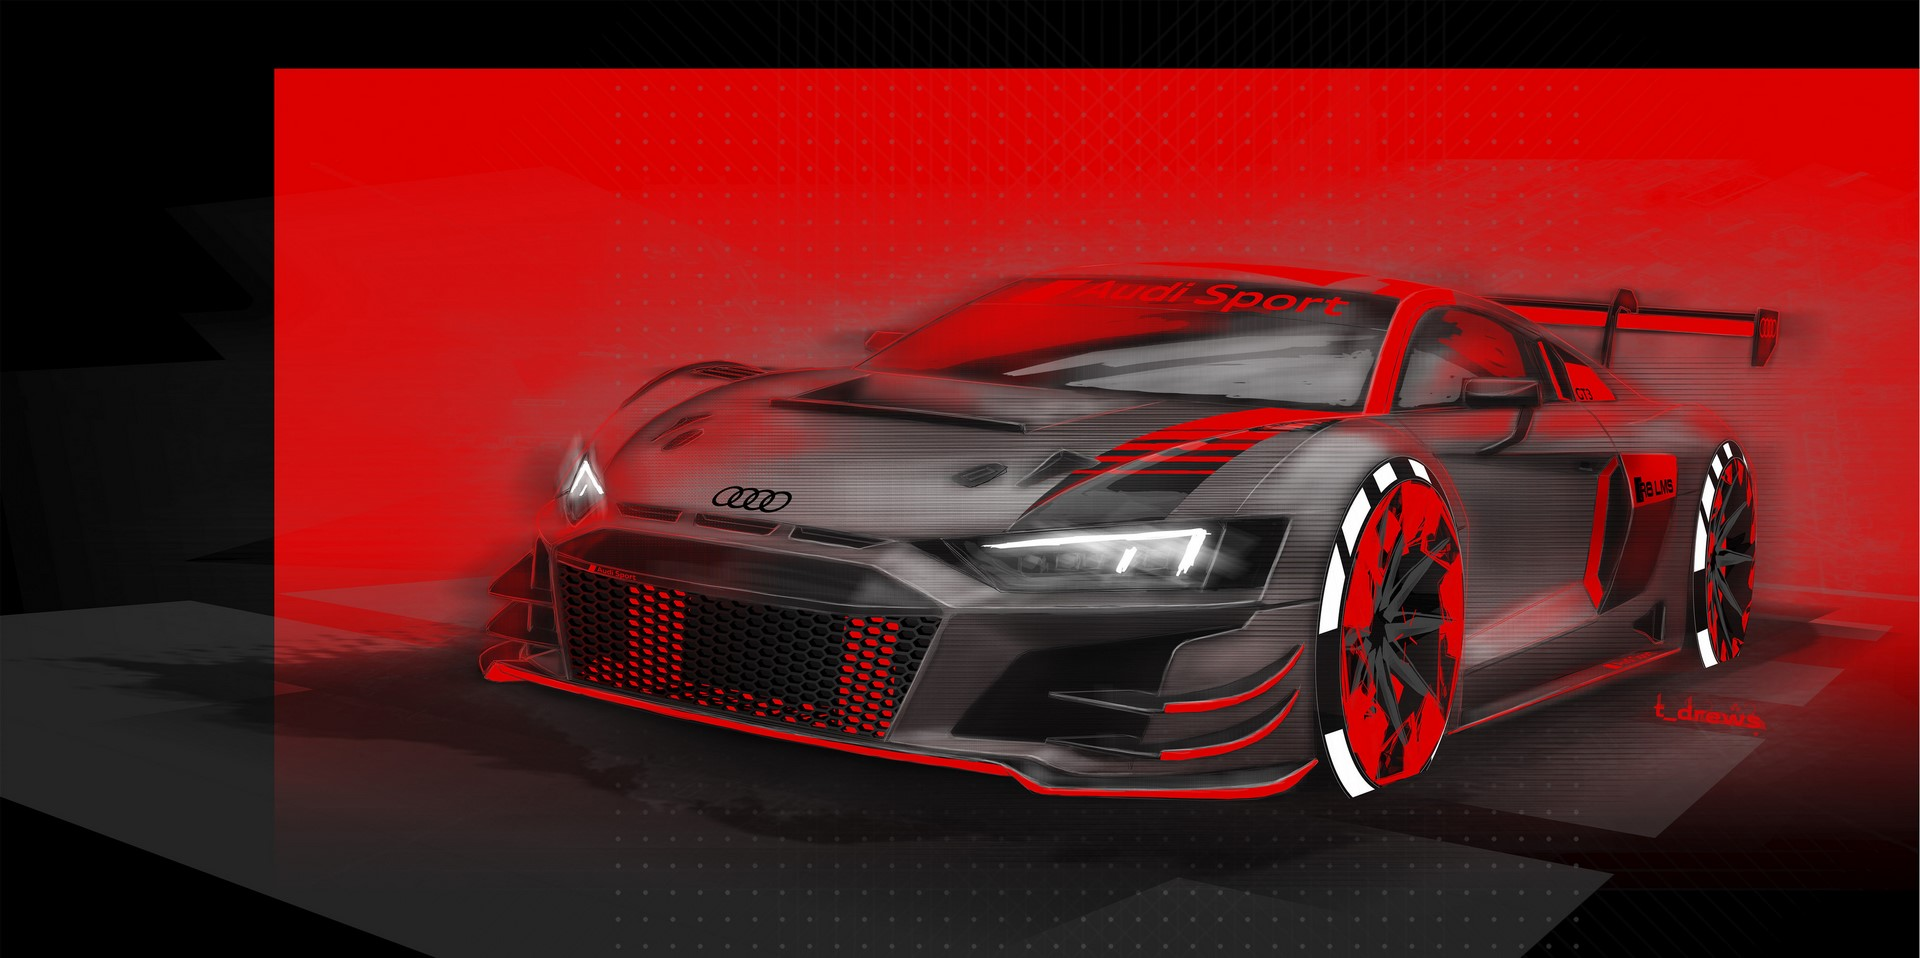 Design Sketch Audi R8 LMS